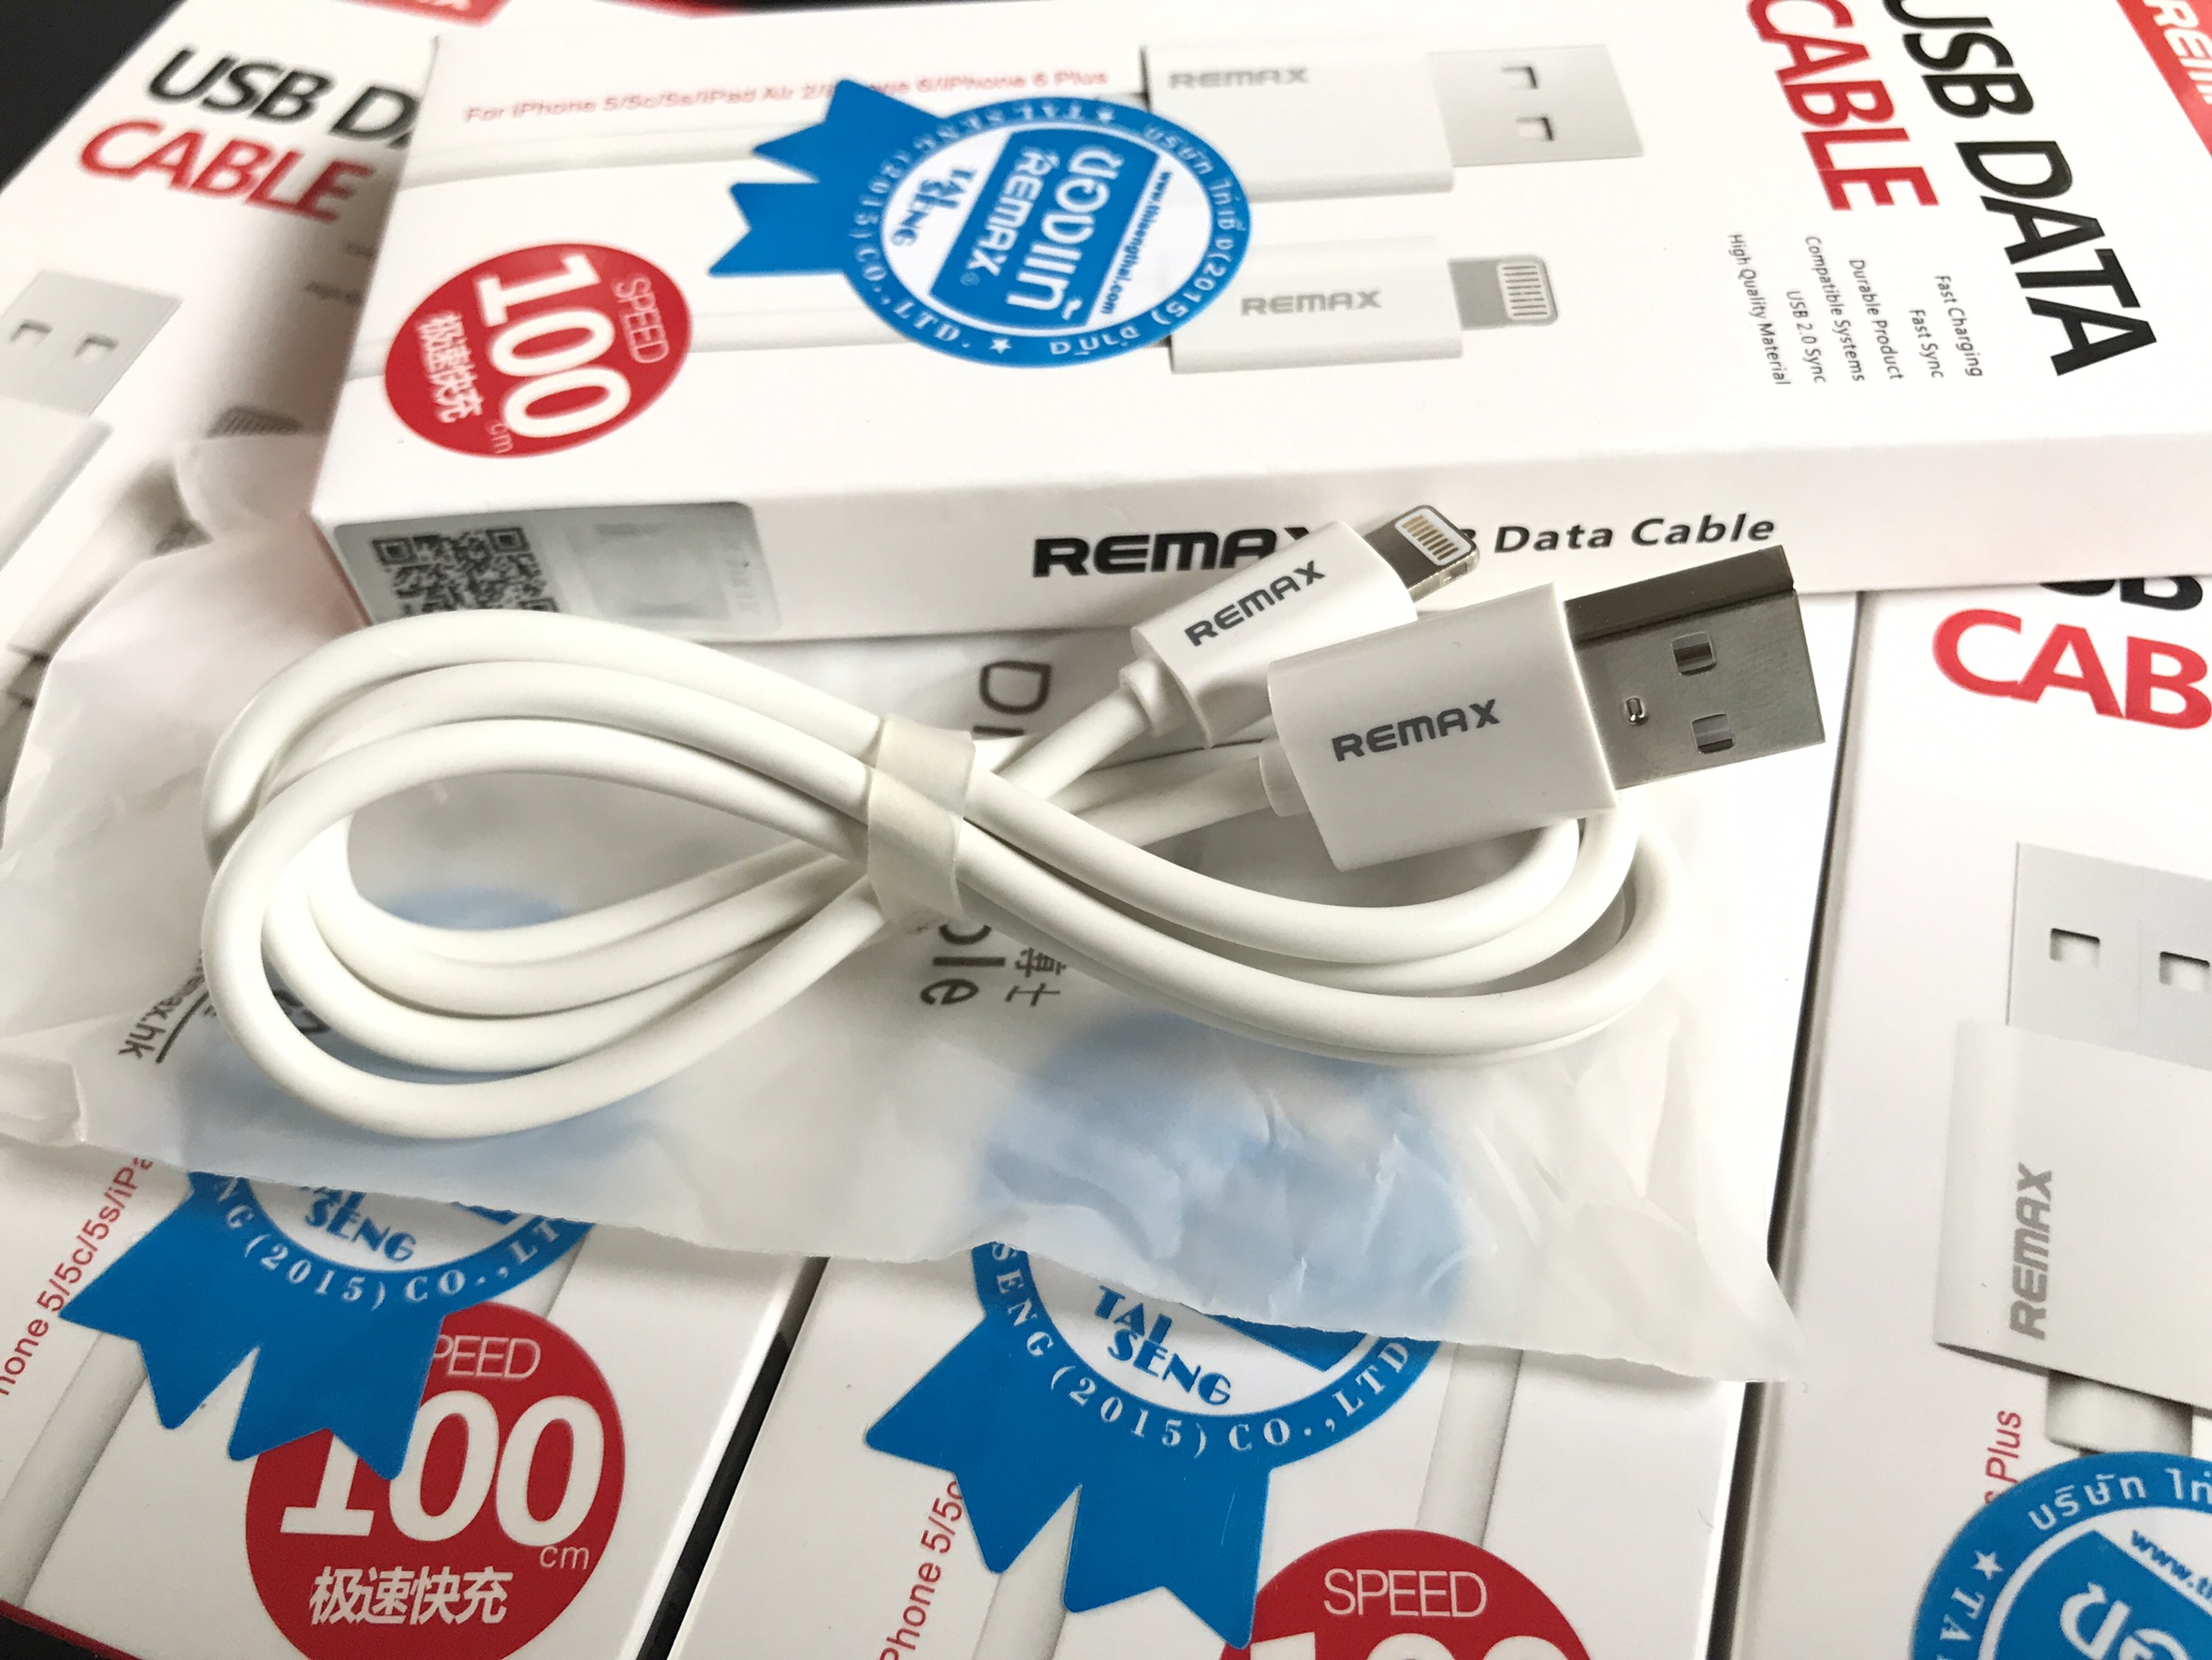 สายชาร์จ iPhone Remax Speed Charging